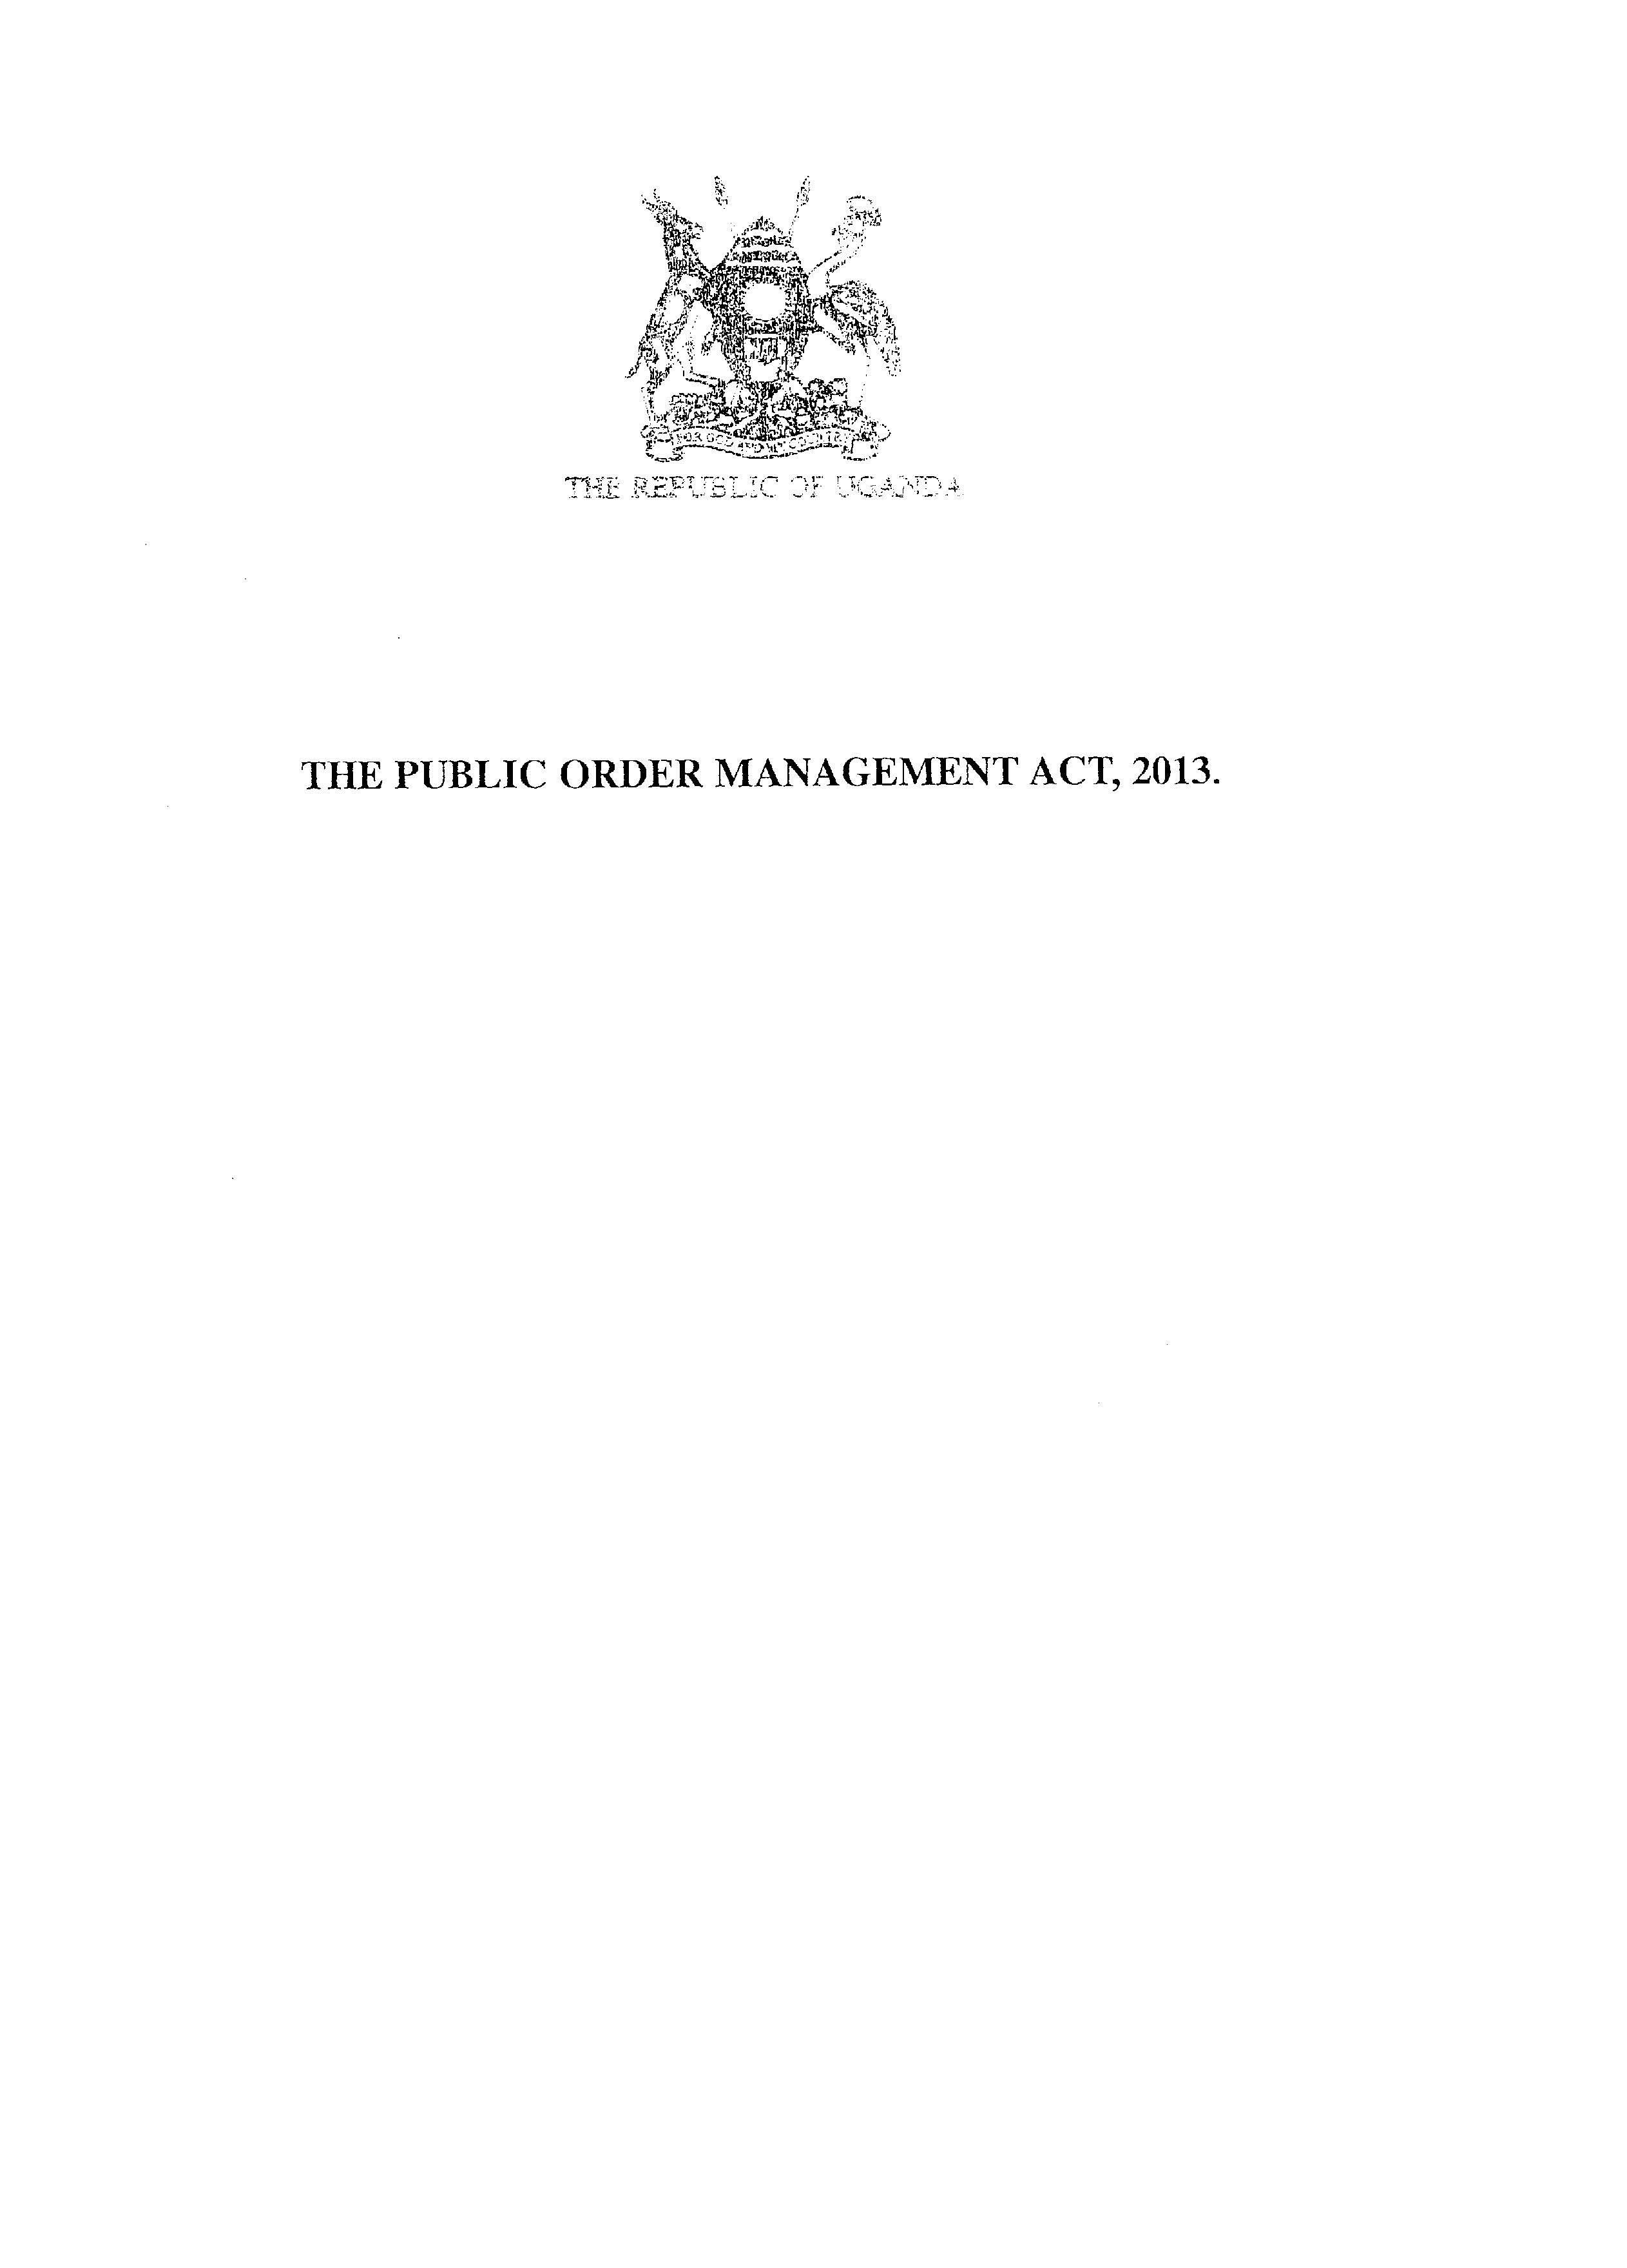 Public Order Management Act 2013